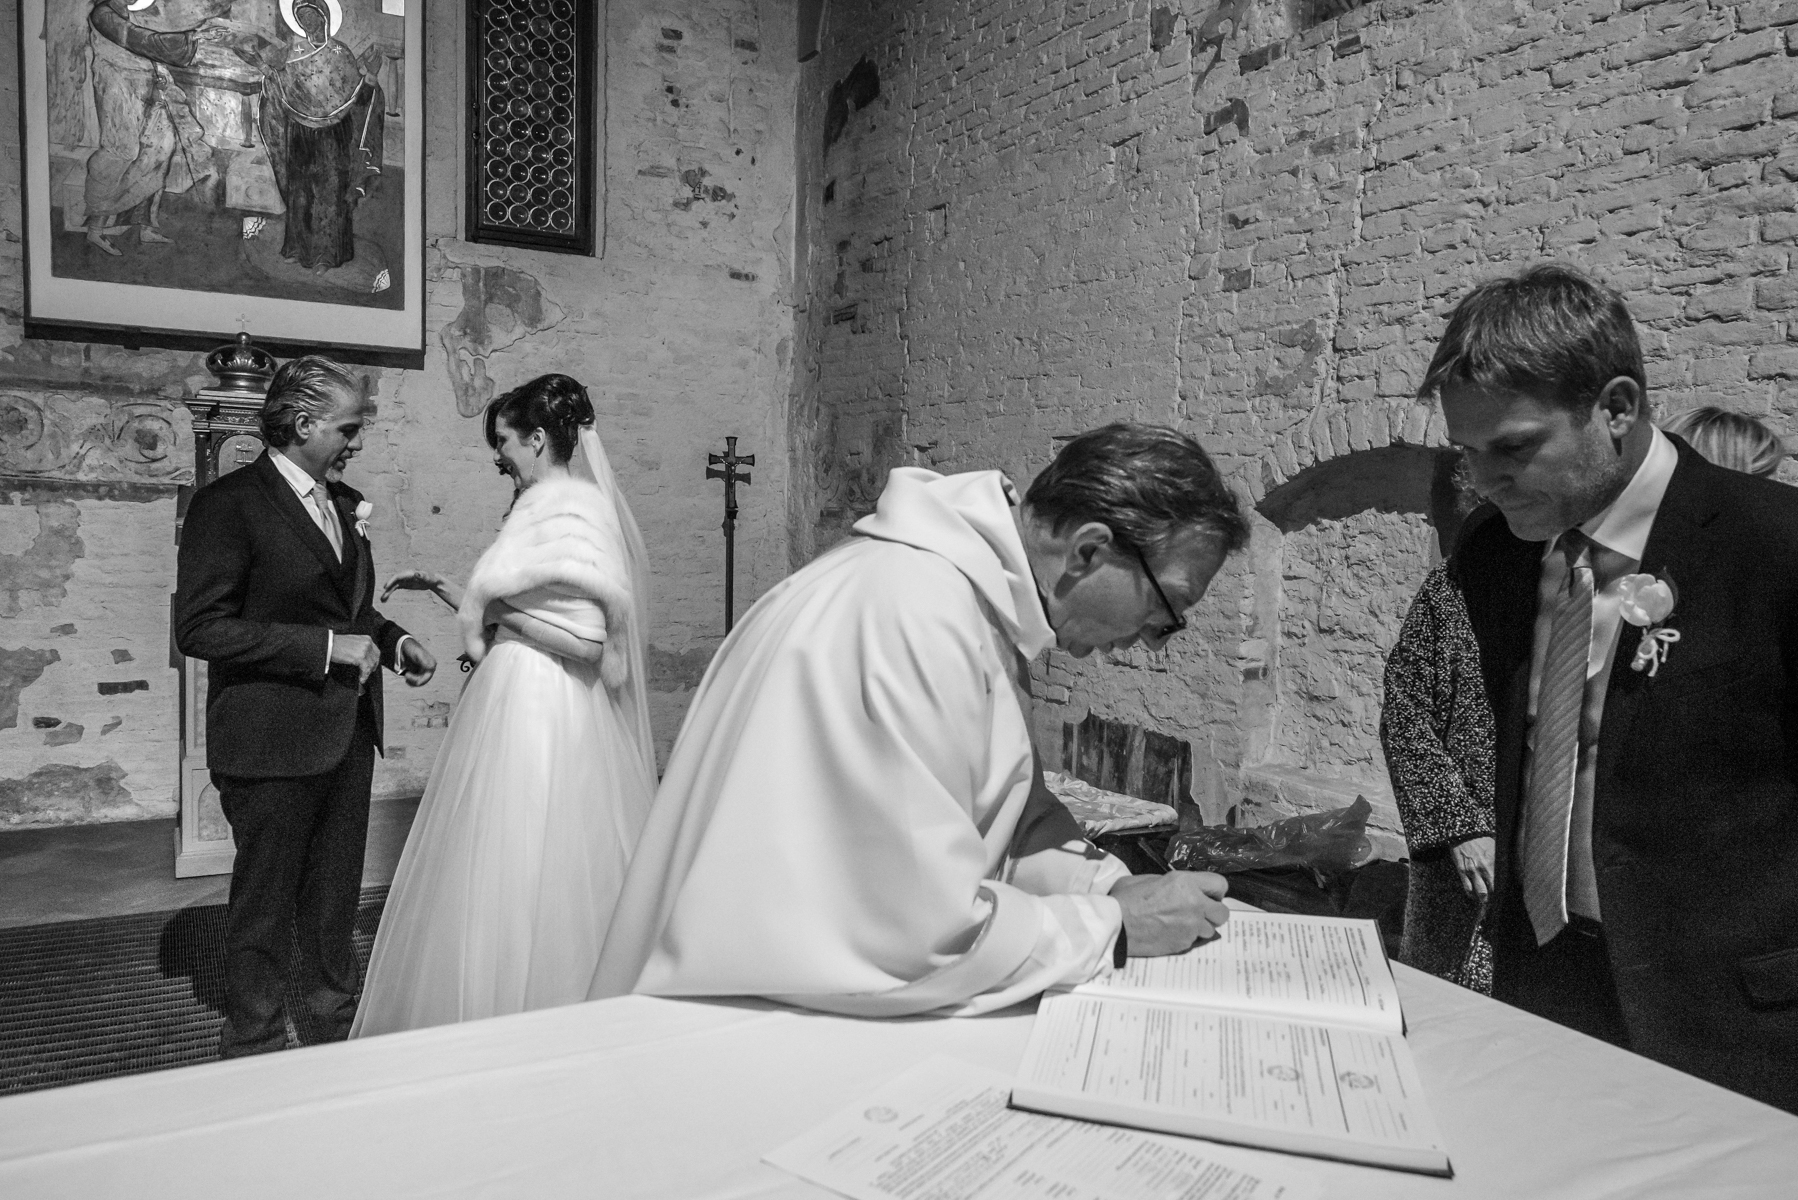 Santa Maria Church, Mantua, IT Elopement Ceremony Image | the priest collects all the data of the wedding witnesses